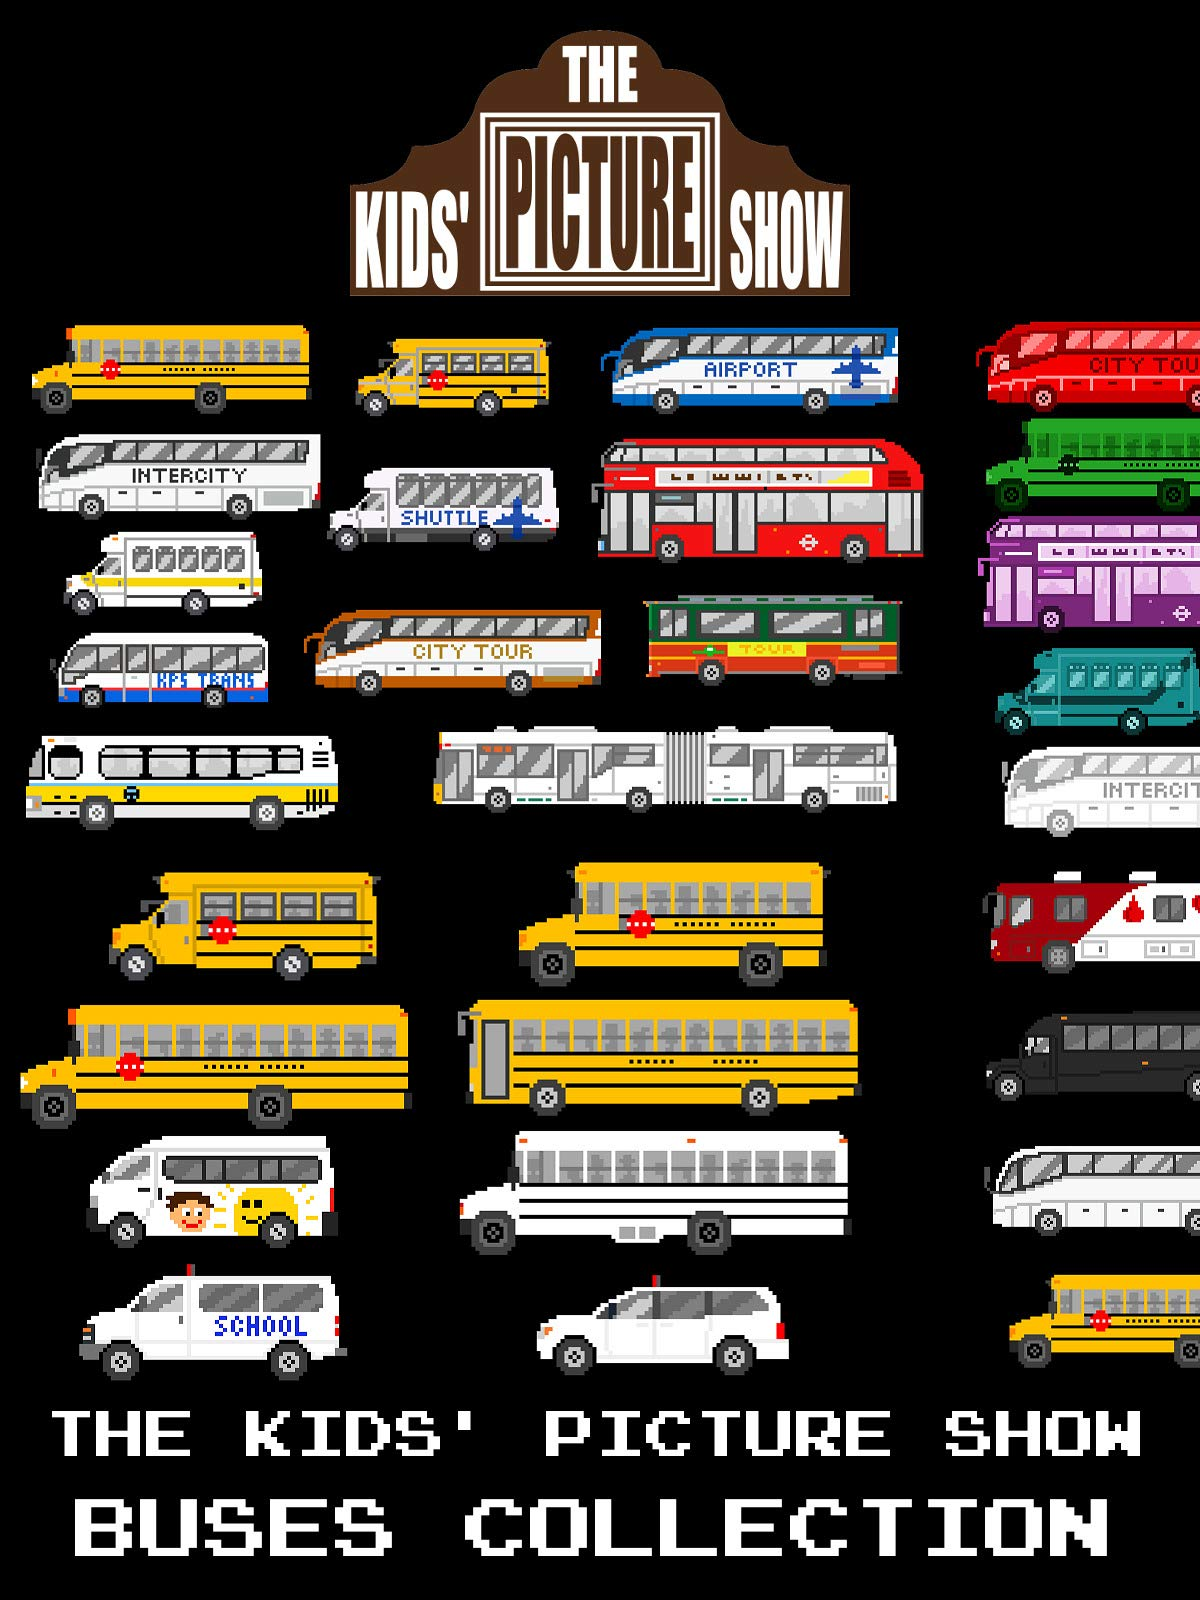 The Kids' Picture Show - Buses Collection